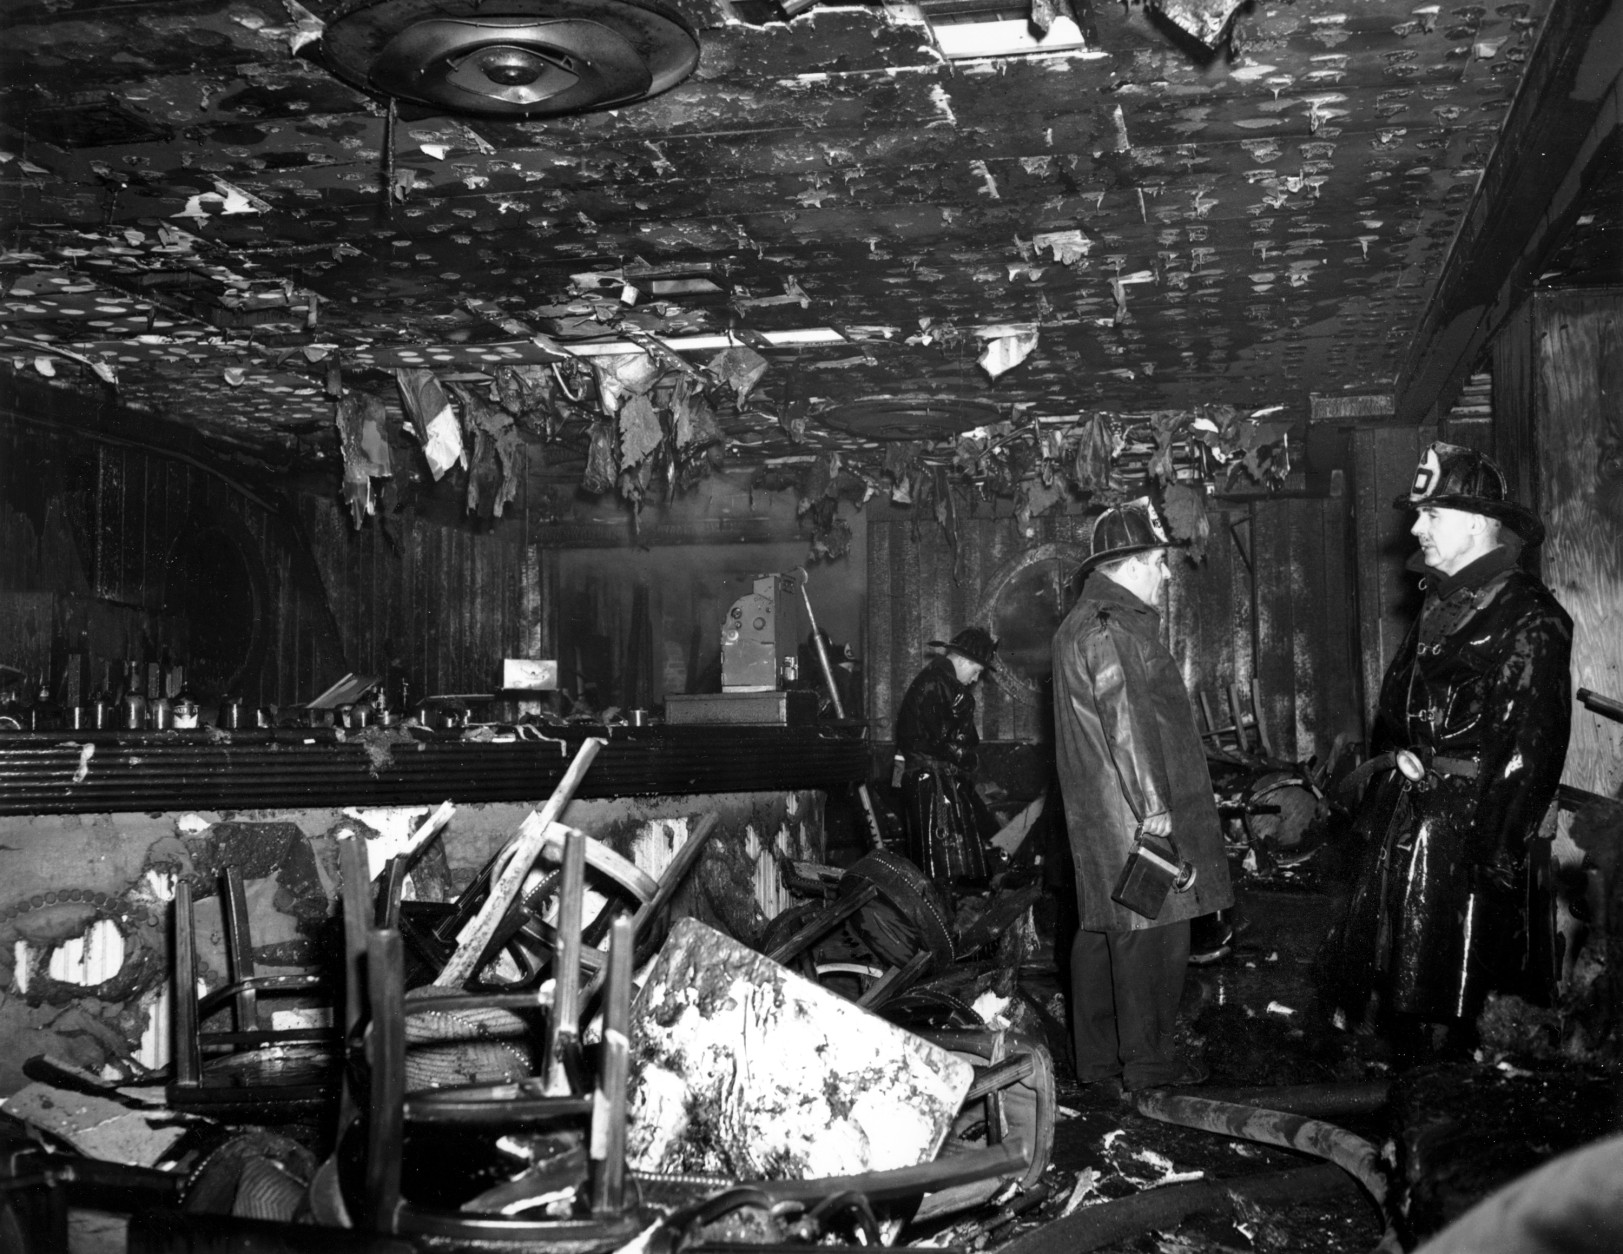 Firemen inspect the ruins of the Cocoanut Grove Night Club in Boston, Mass., on Nov. 28, 1942. A fire swept through the establishment at night, killing 492 persons. (AP Photo)